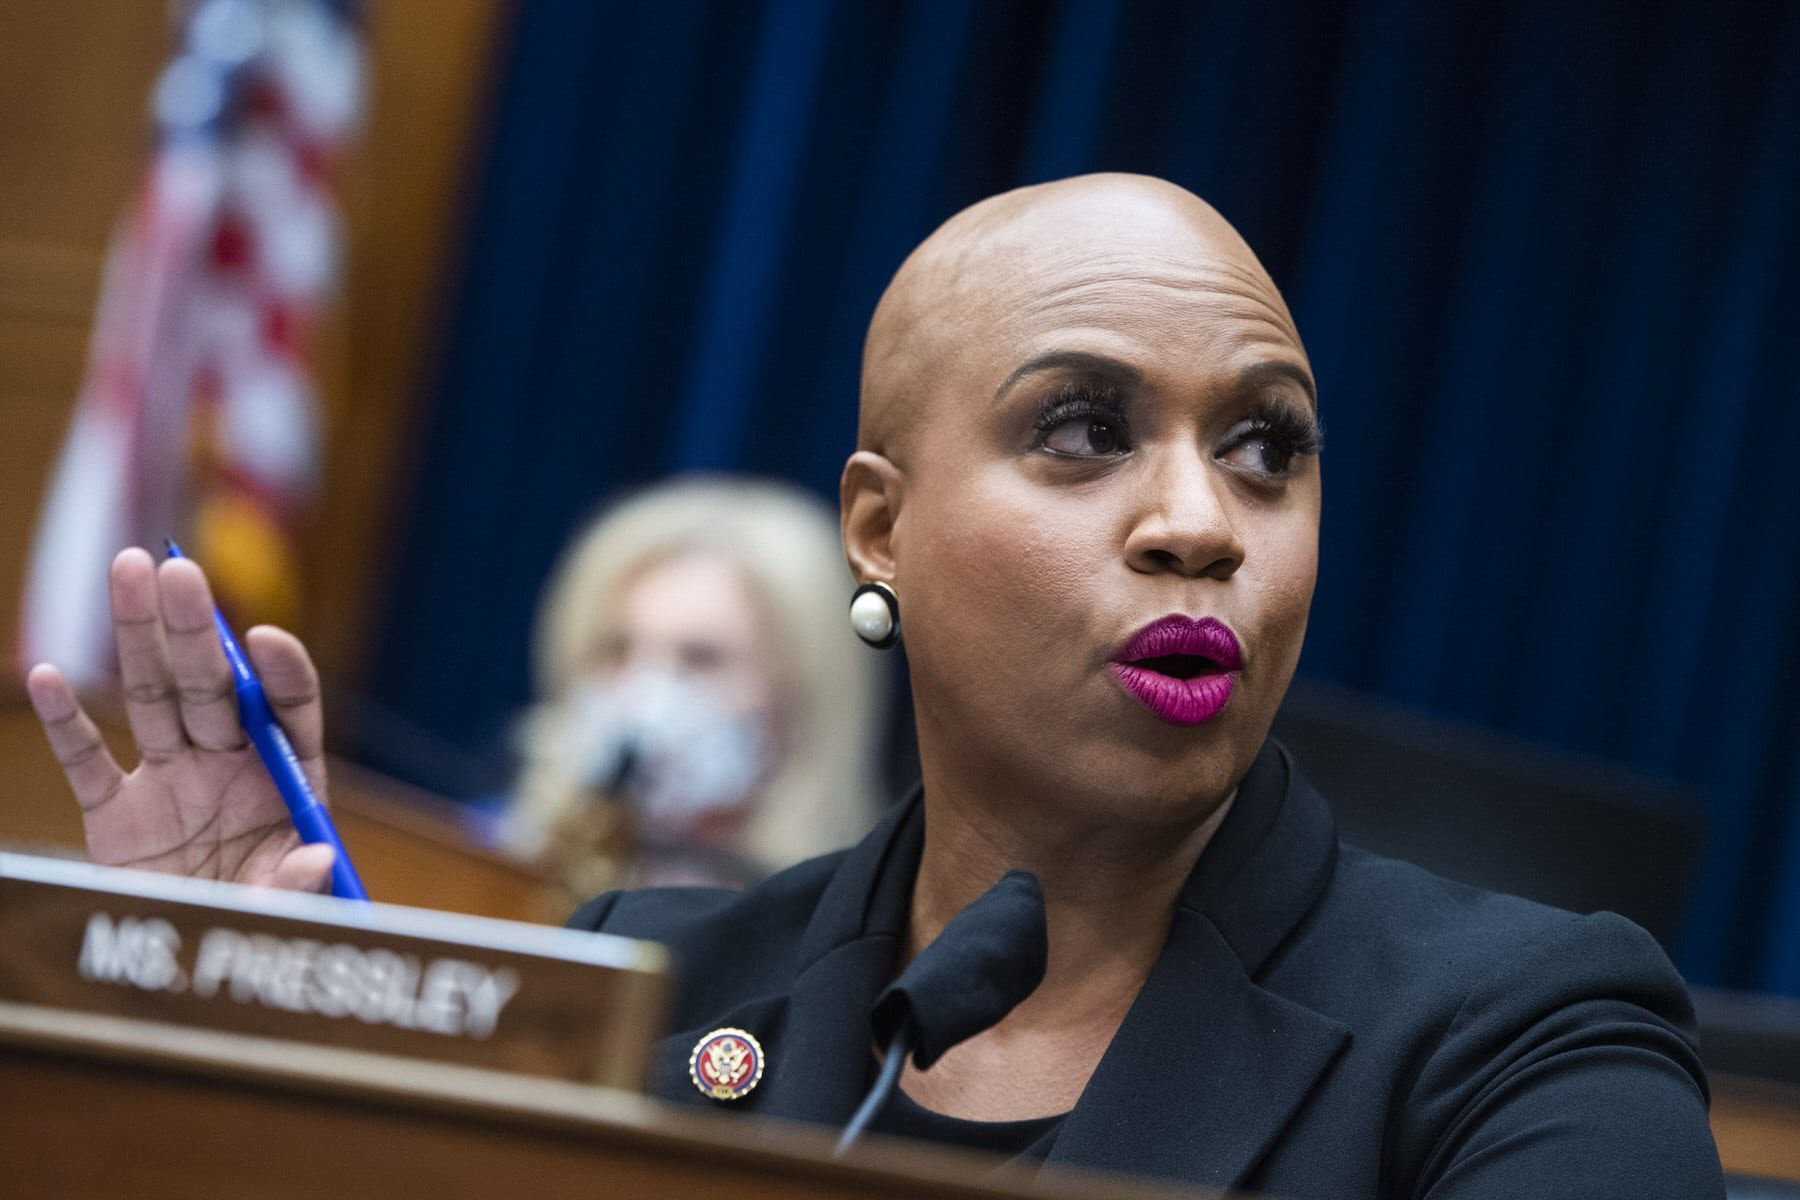 Representative Ayanna Pressley (D-MA) asking questions at a House Oversight and Reform Committee hearing.